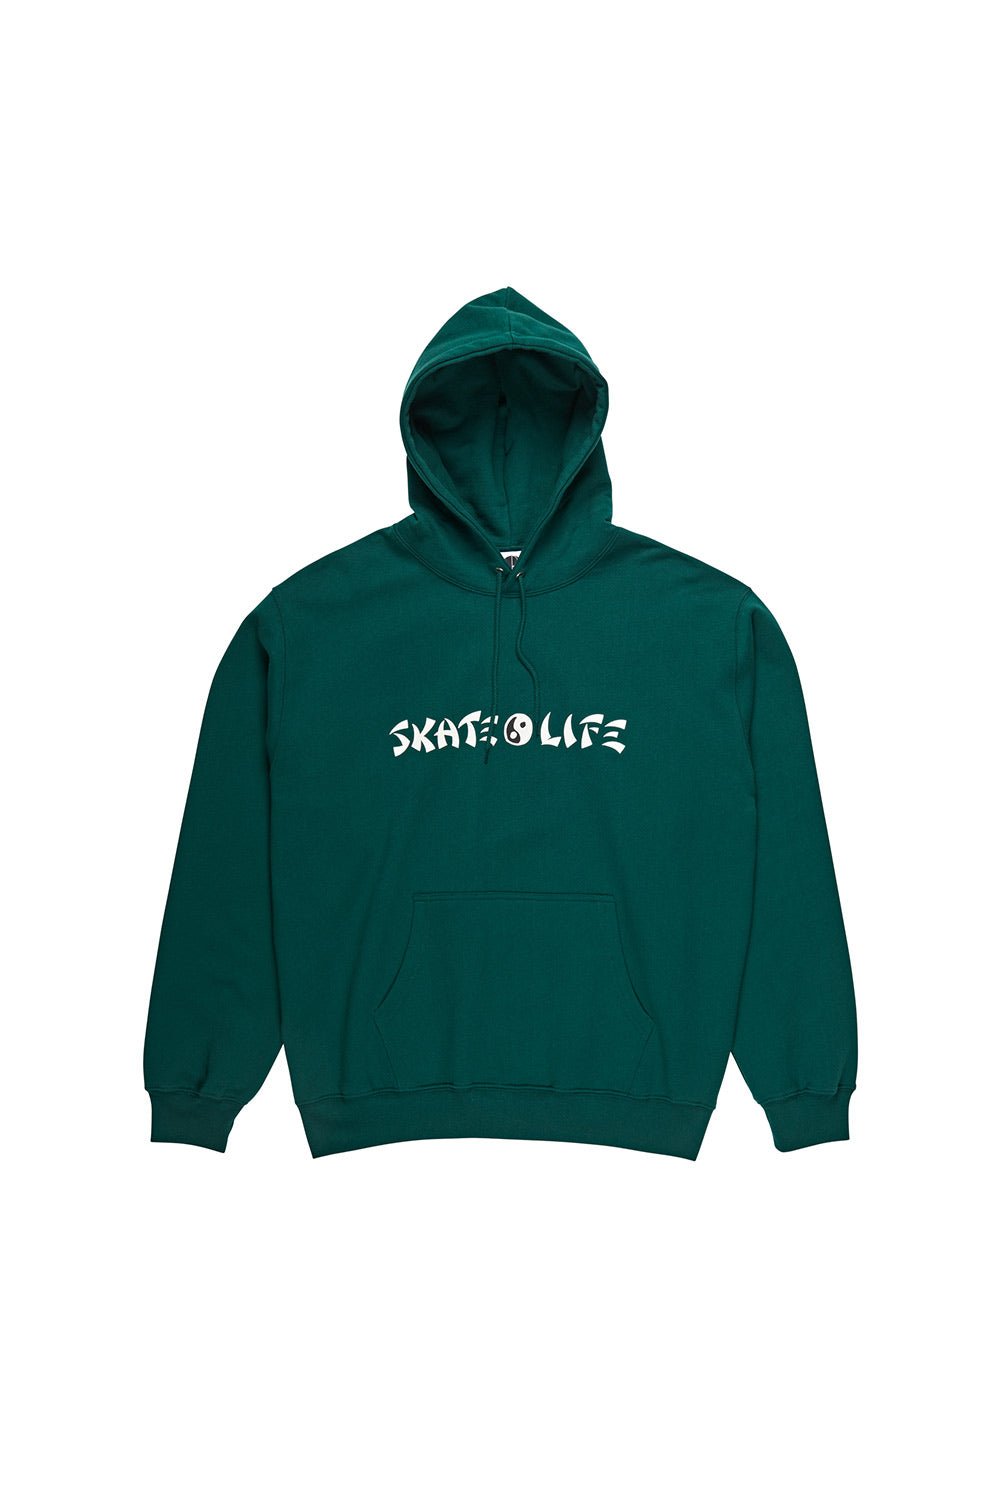 Polar Skate Co Skatelife Hoodie - Dark Green | Buy Polar Skate Co Online